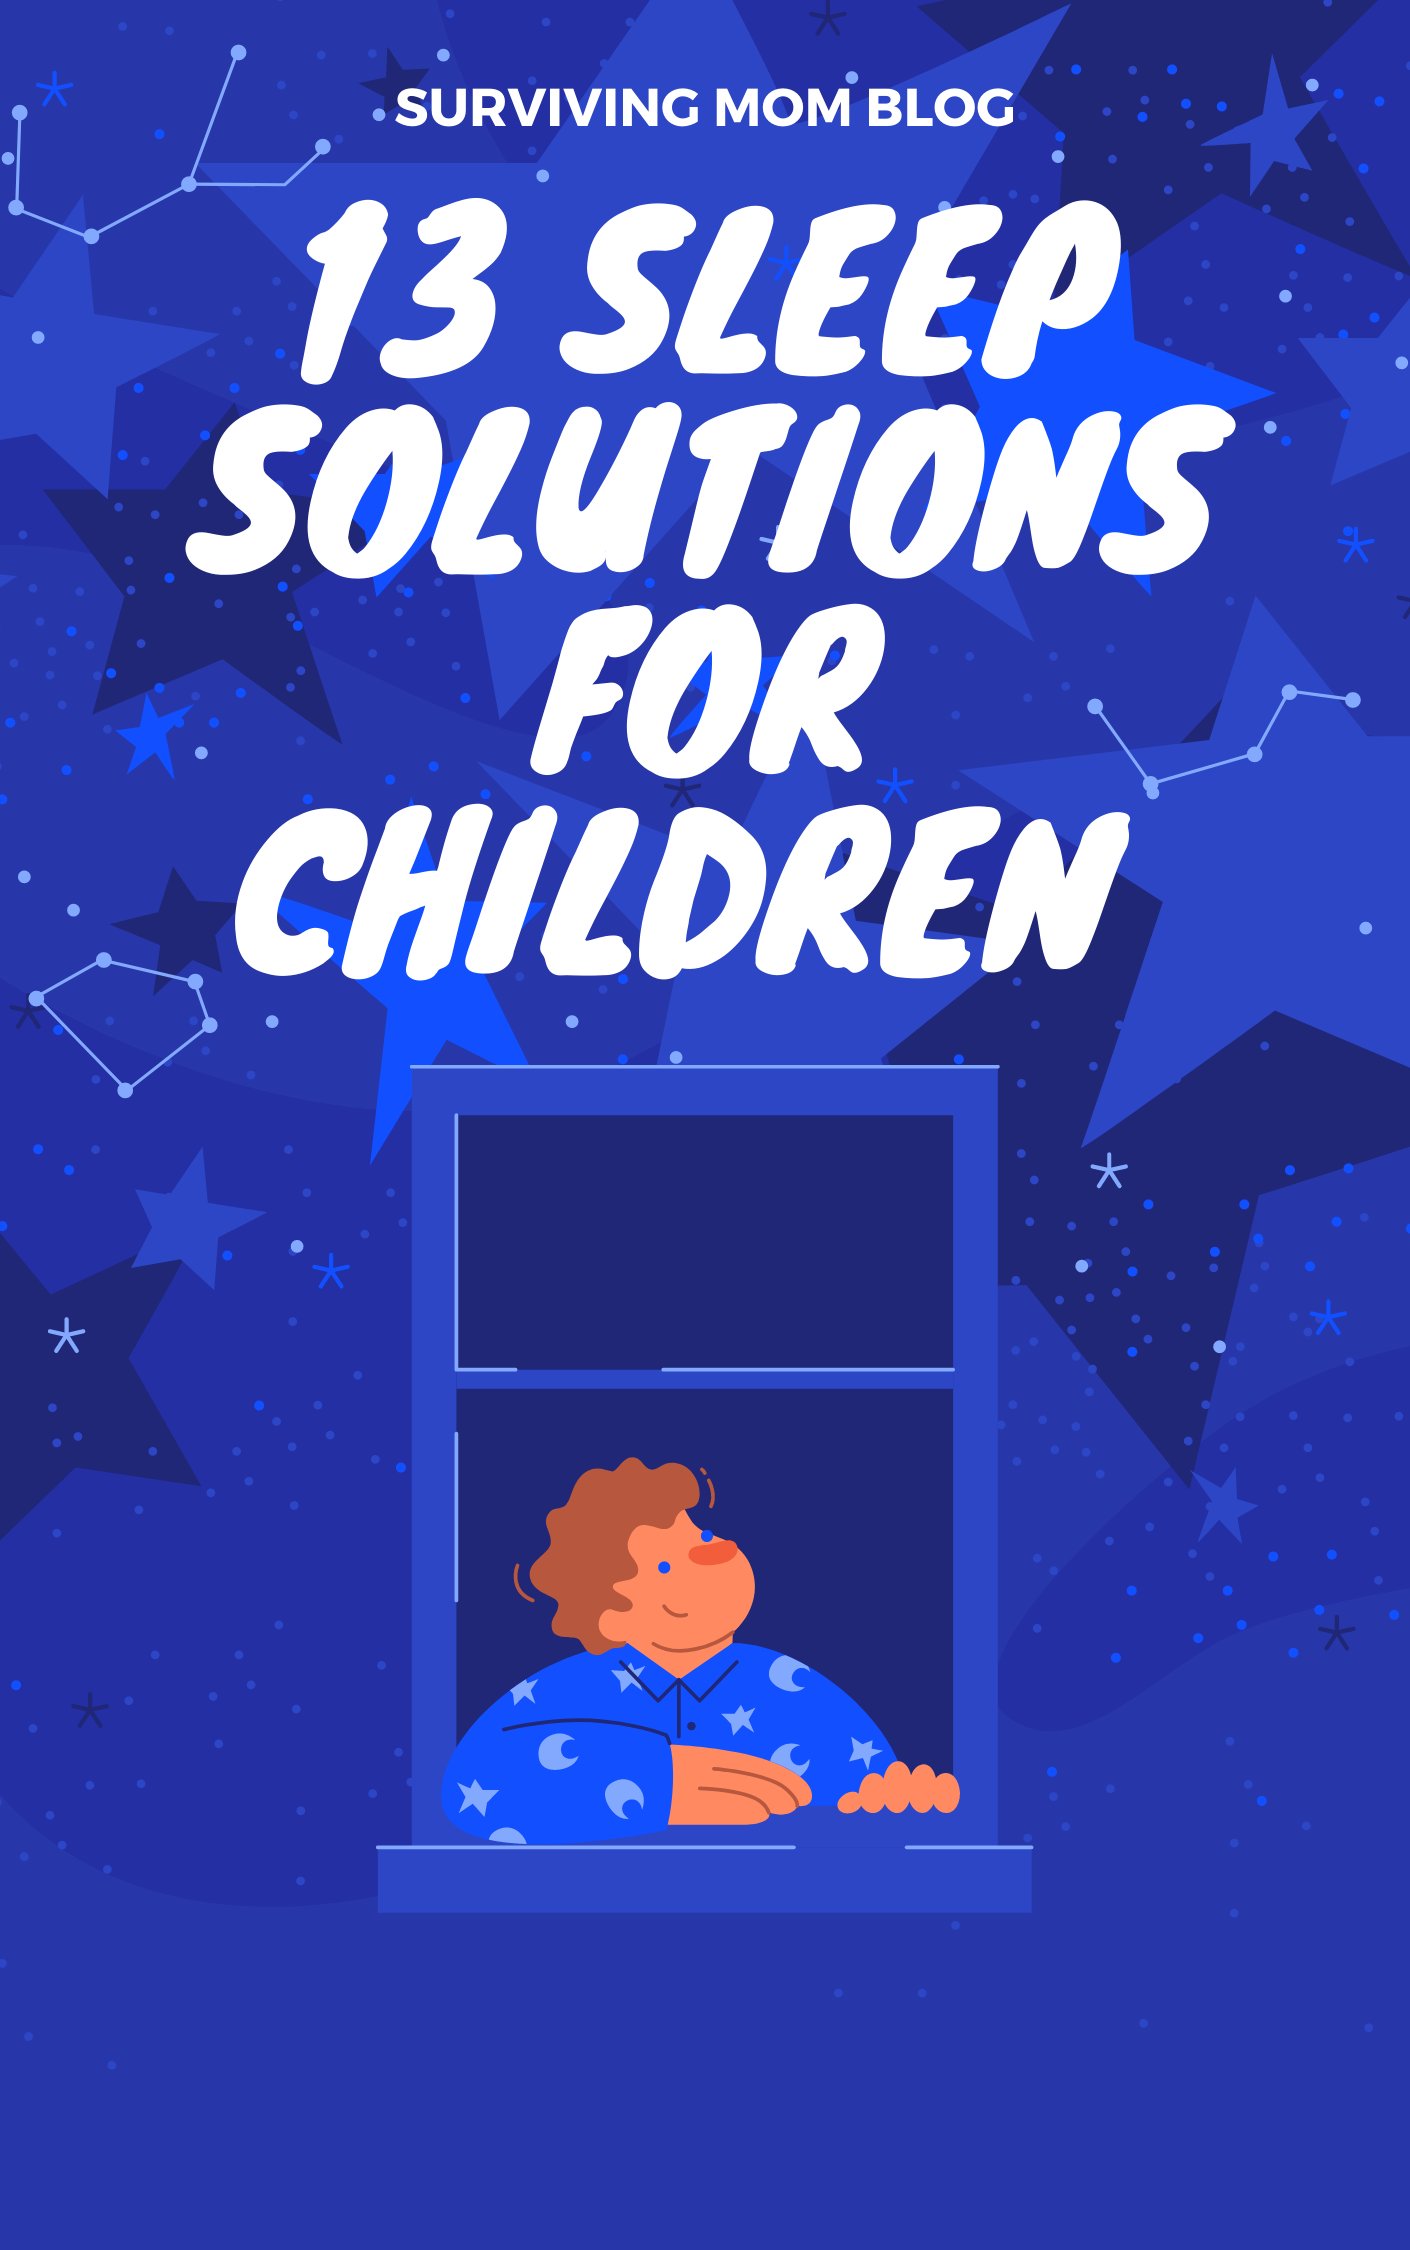 13 sleep solutions to aid children at bedtime